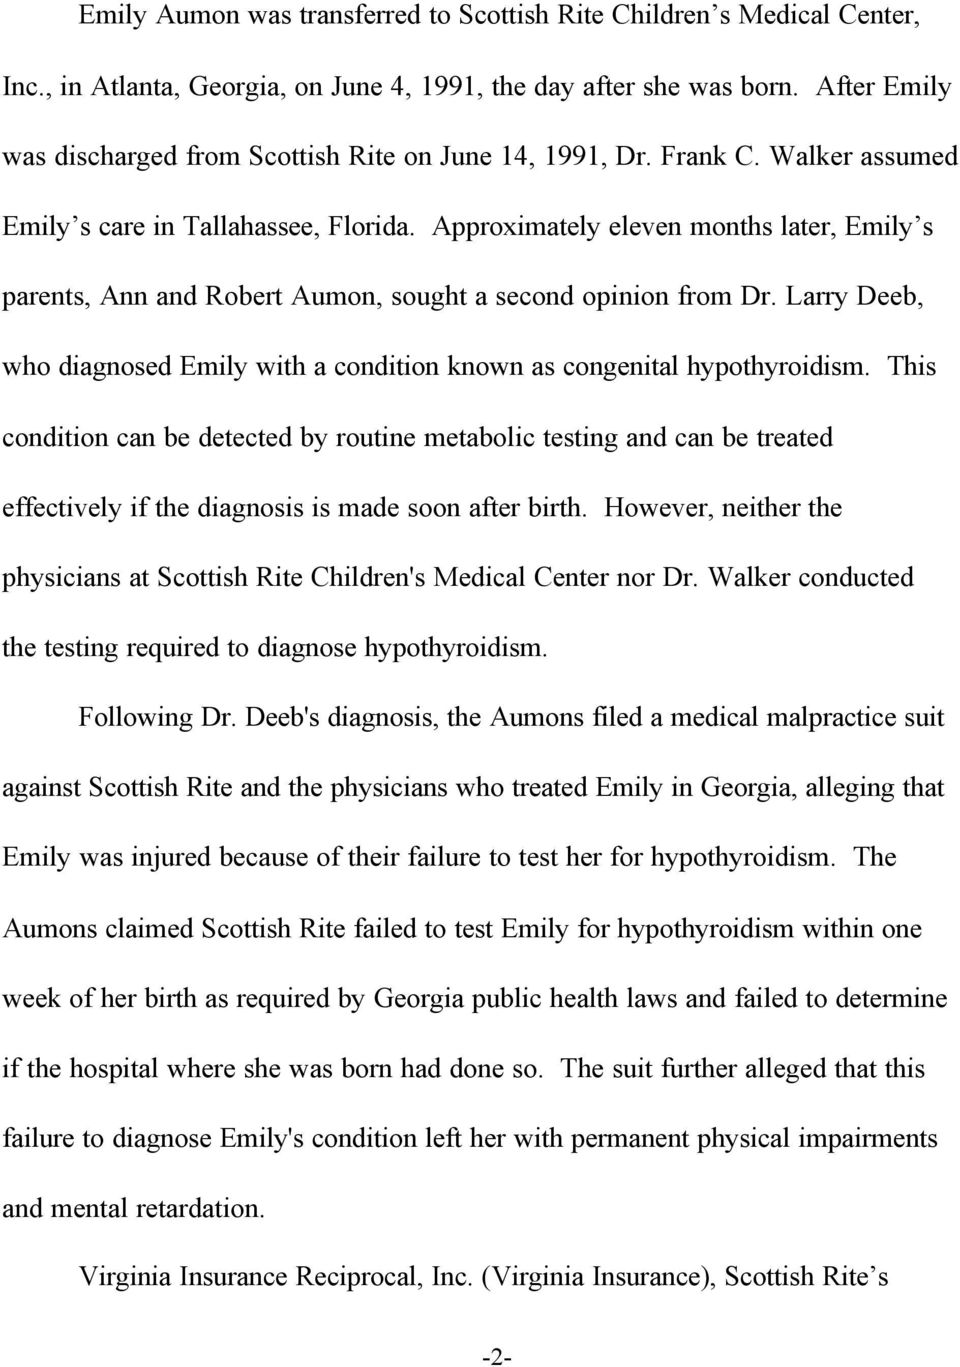 Approximately eleven months later, Emily s parents, Ann and Robert Aumon, sought a second opinion from Dr. Larry Deeb, who diagnosed Emily with a condition known as congenital hypothyroidism.